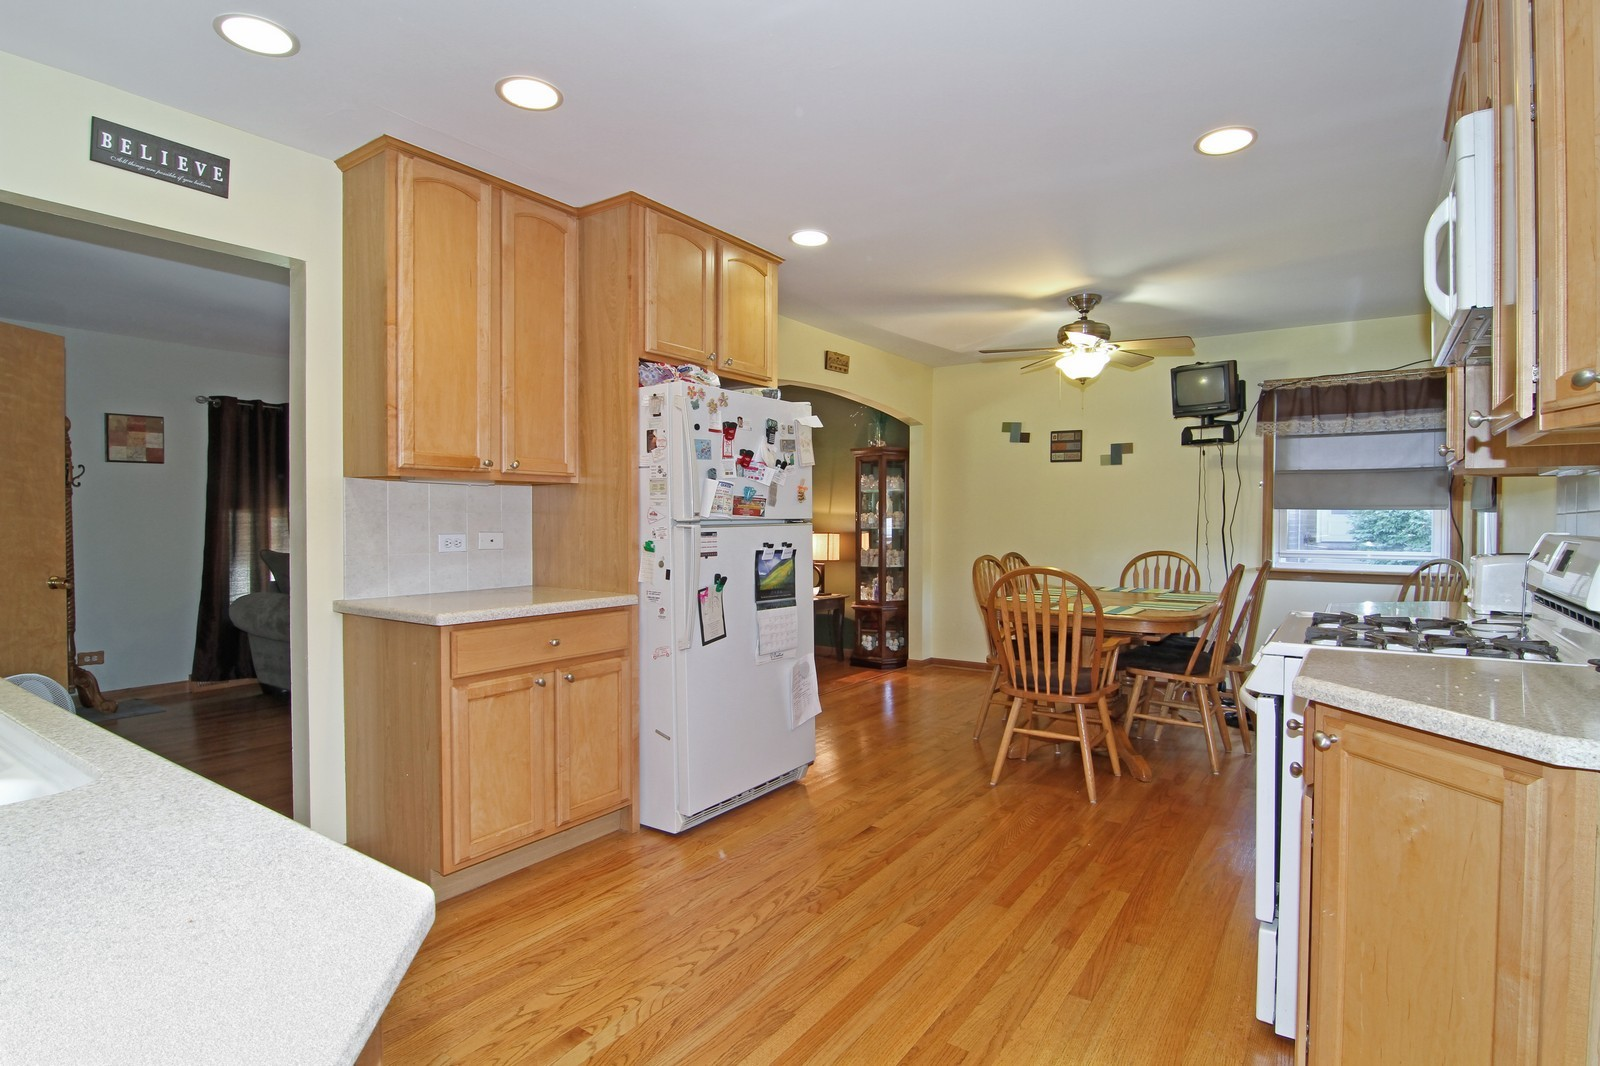 Real Estate Photography - 632 S. Lalonde Ave, Lombard, IL, 60148 - Kitchen / Breakfast Room